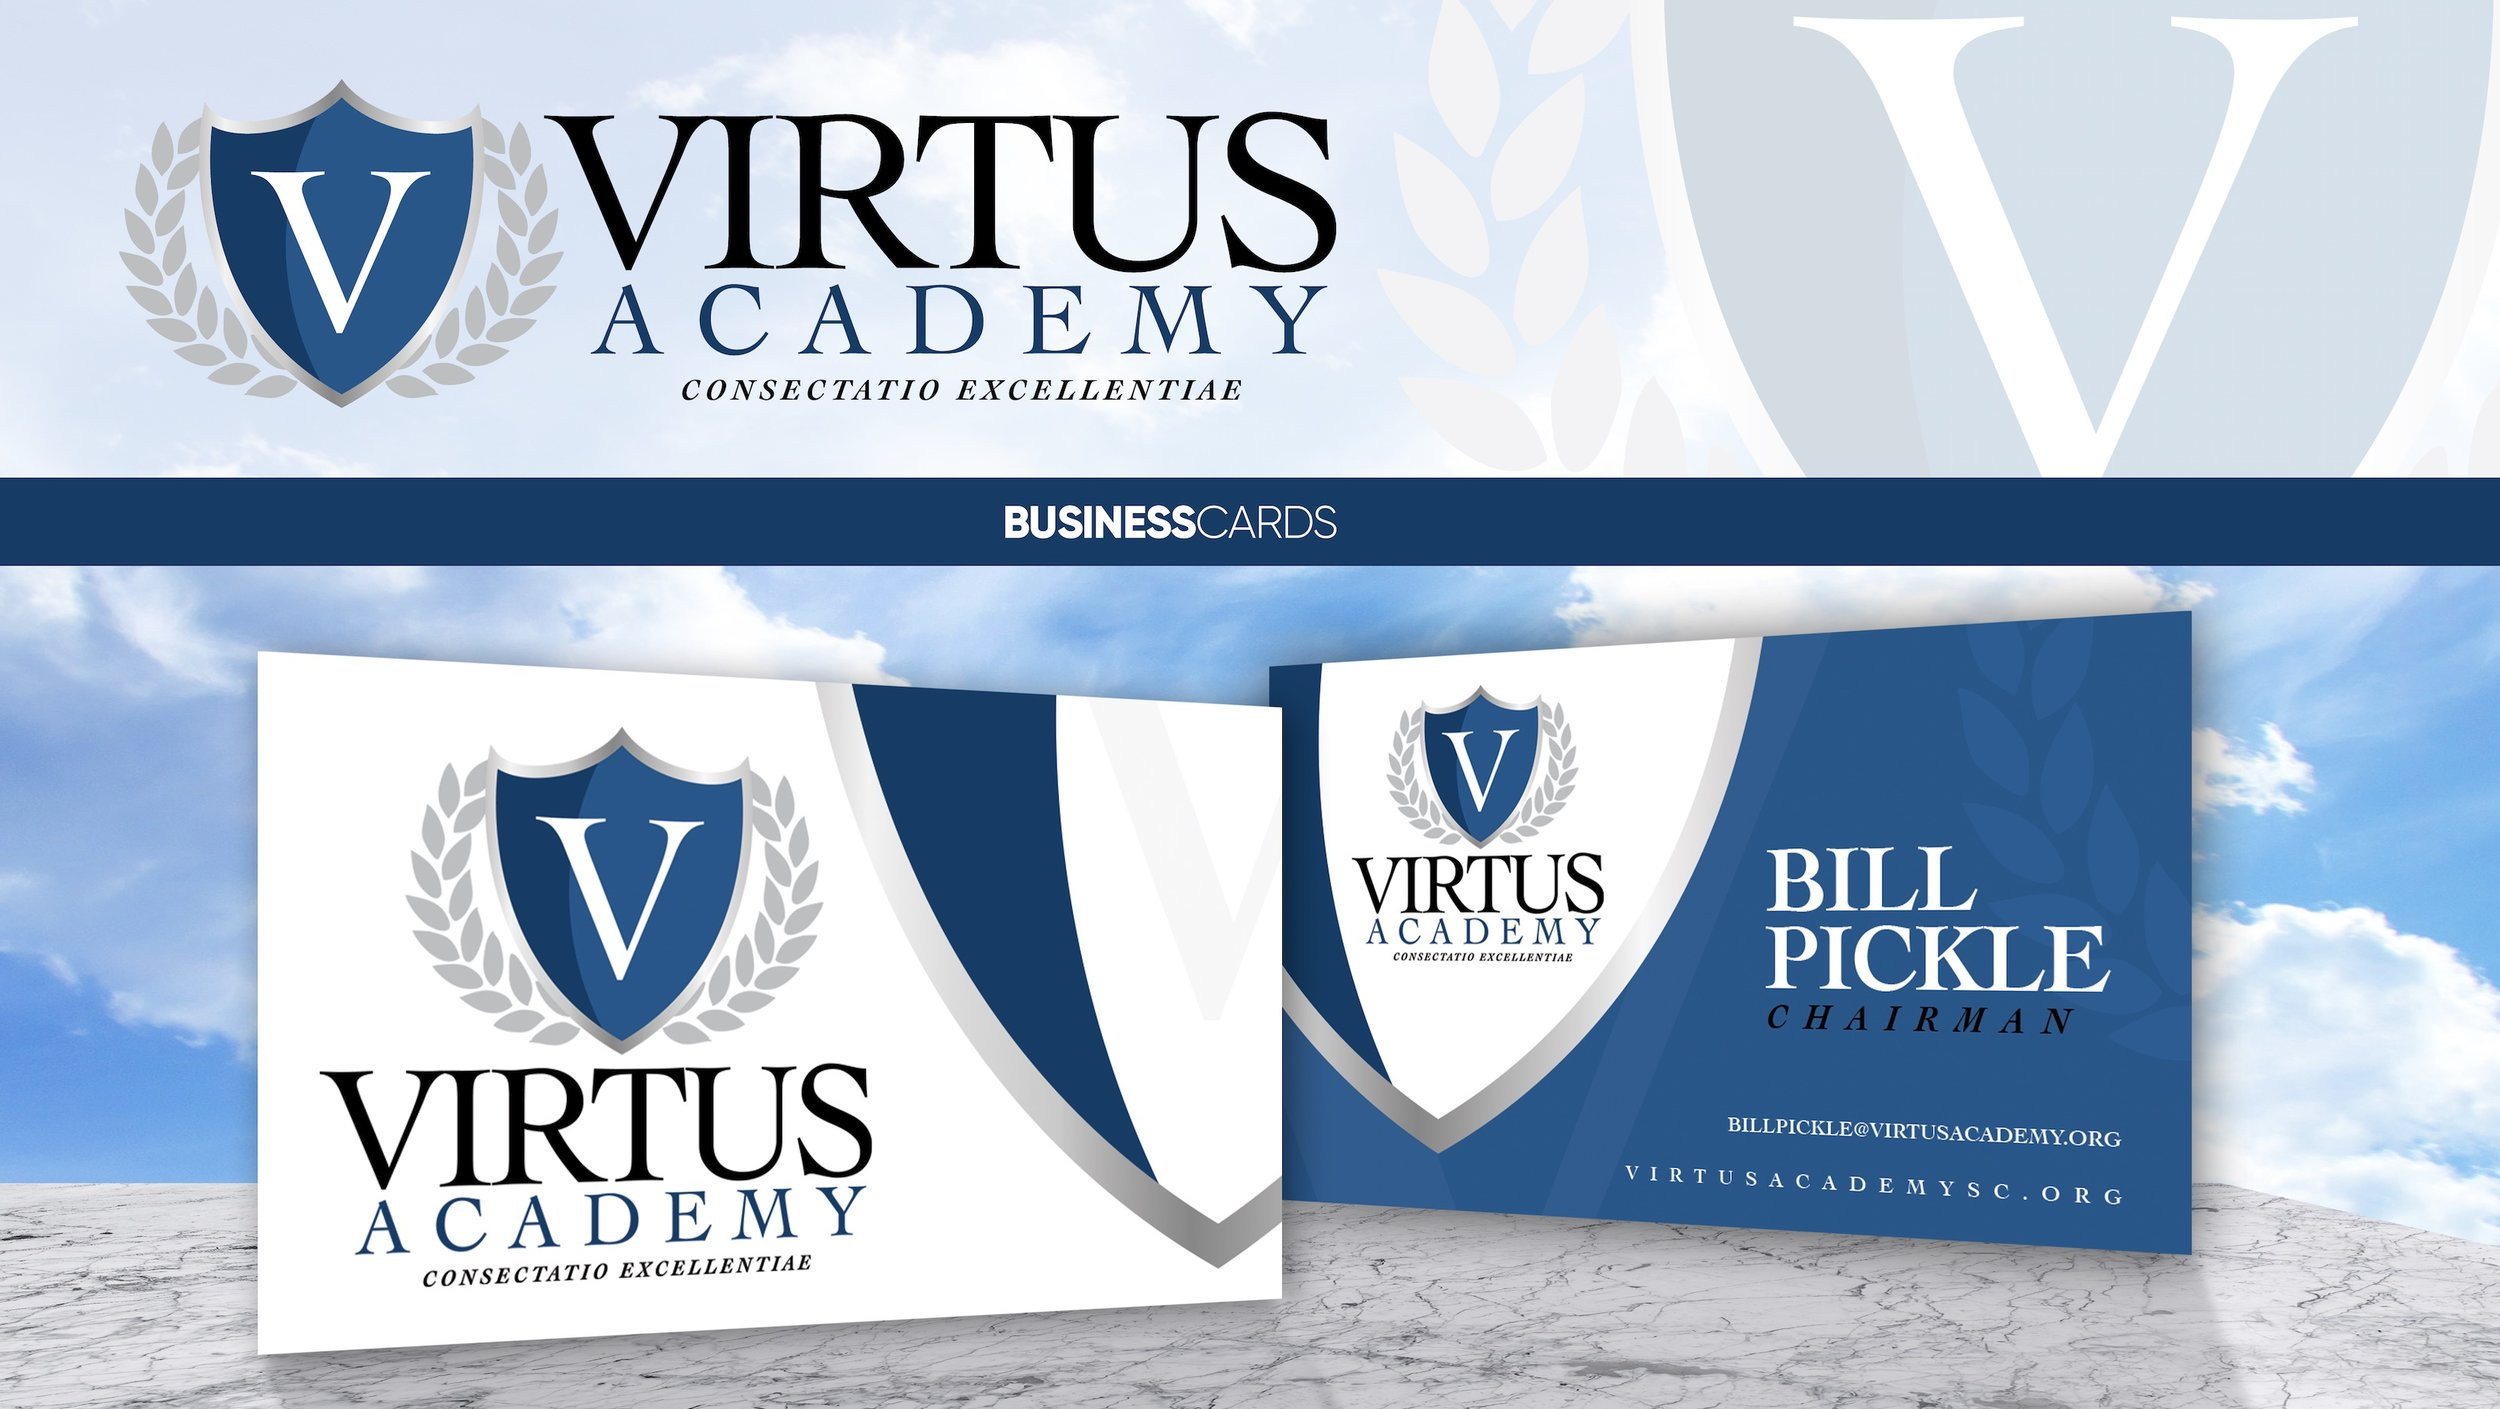 Concept business card design for Virtus Academy. We designed this logo as well.